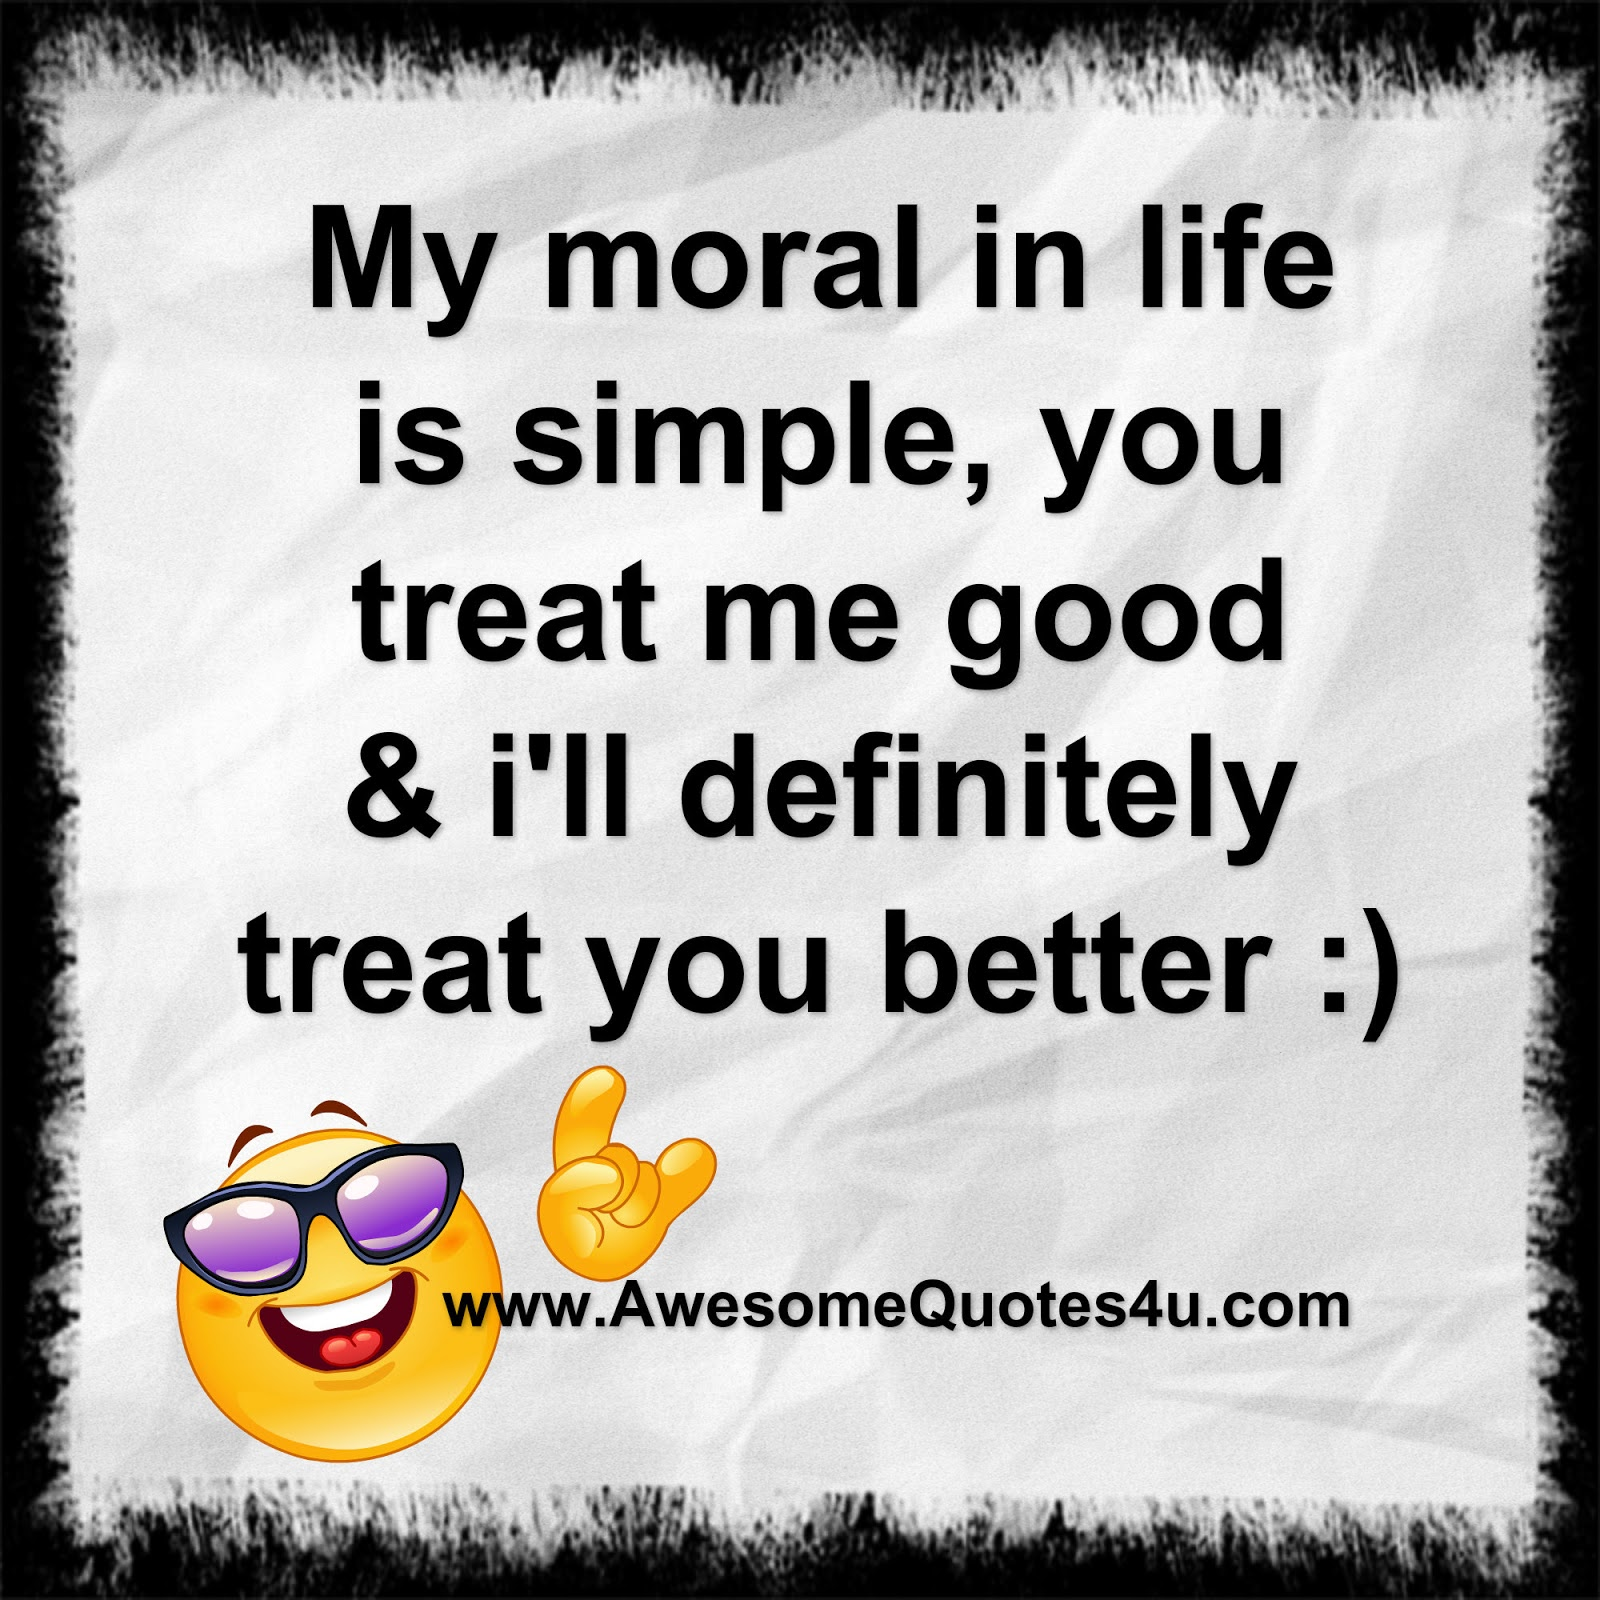 Awesome Quotes: My Moral In Life